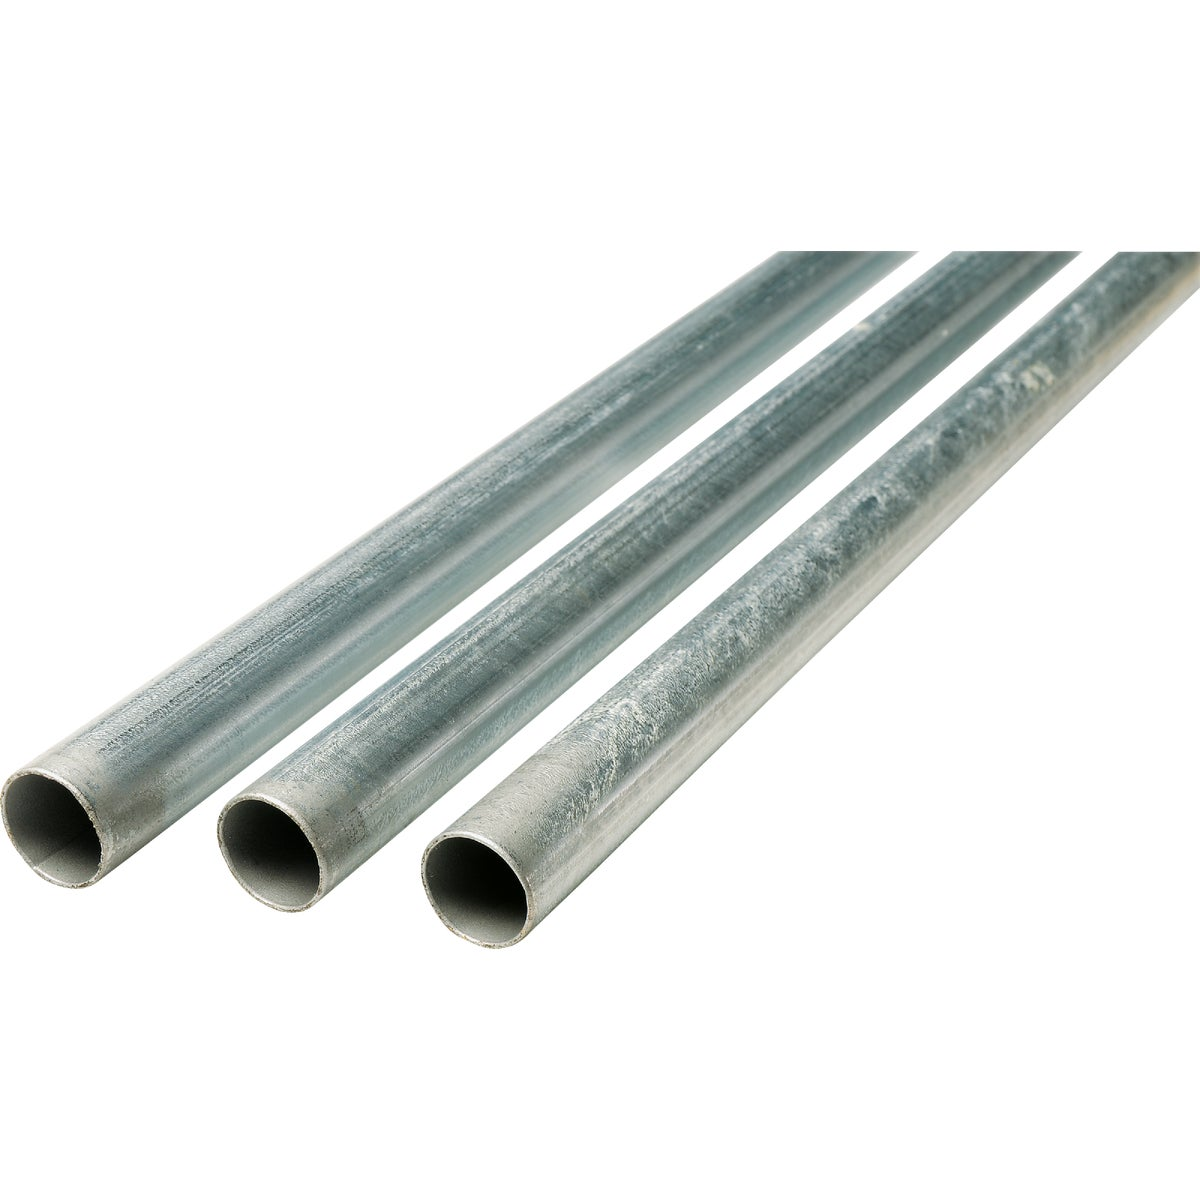 "1/2"" EMT CONDUIT - 101534 by Allied Tube  Atkore"